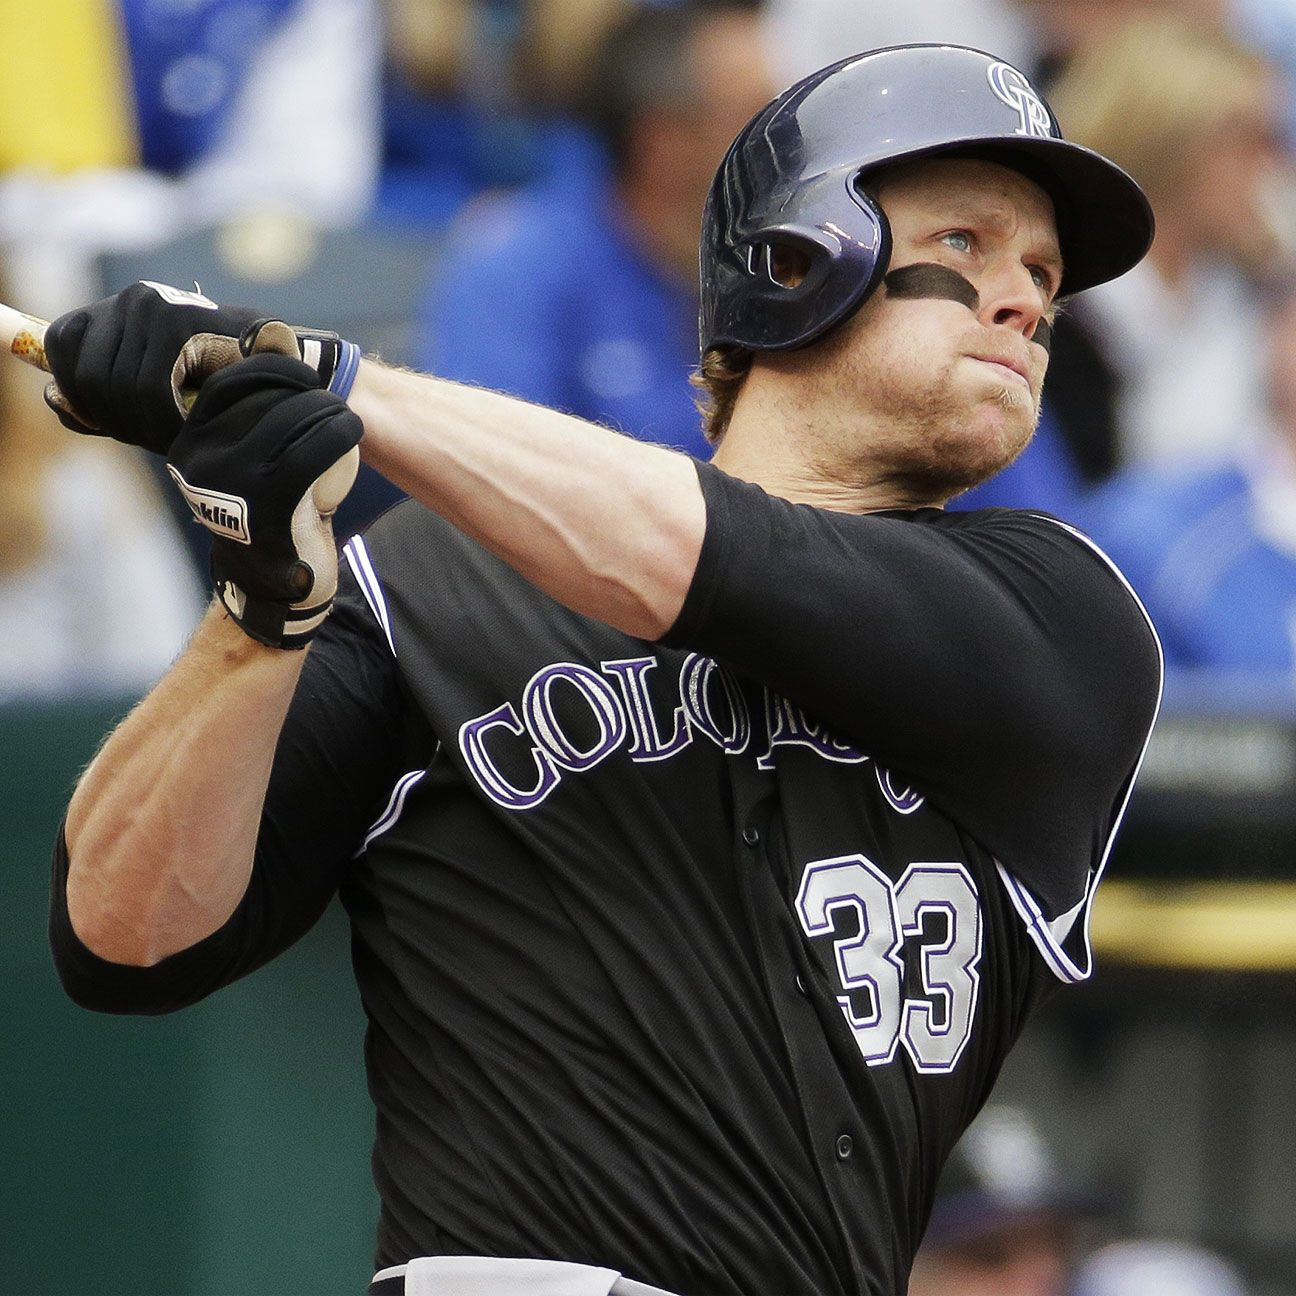 MLB - Justin Morneau career revival with Colorado Rockies